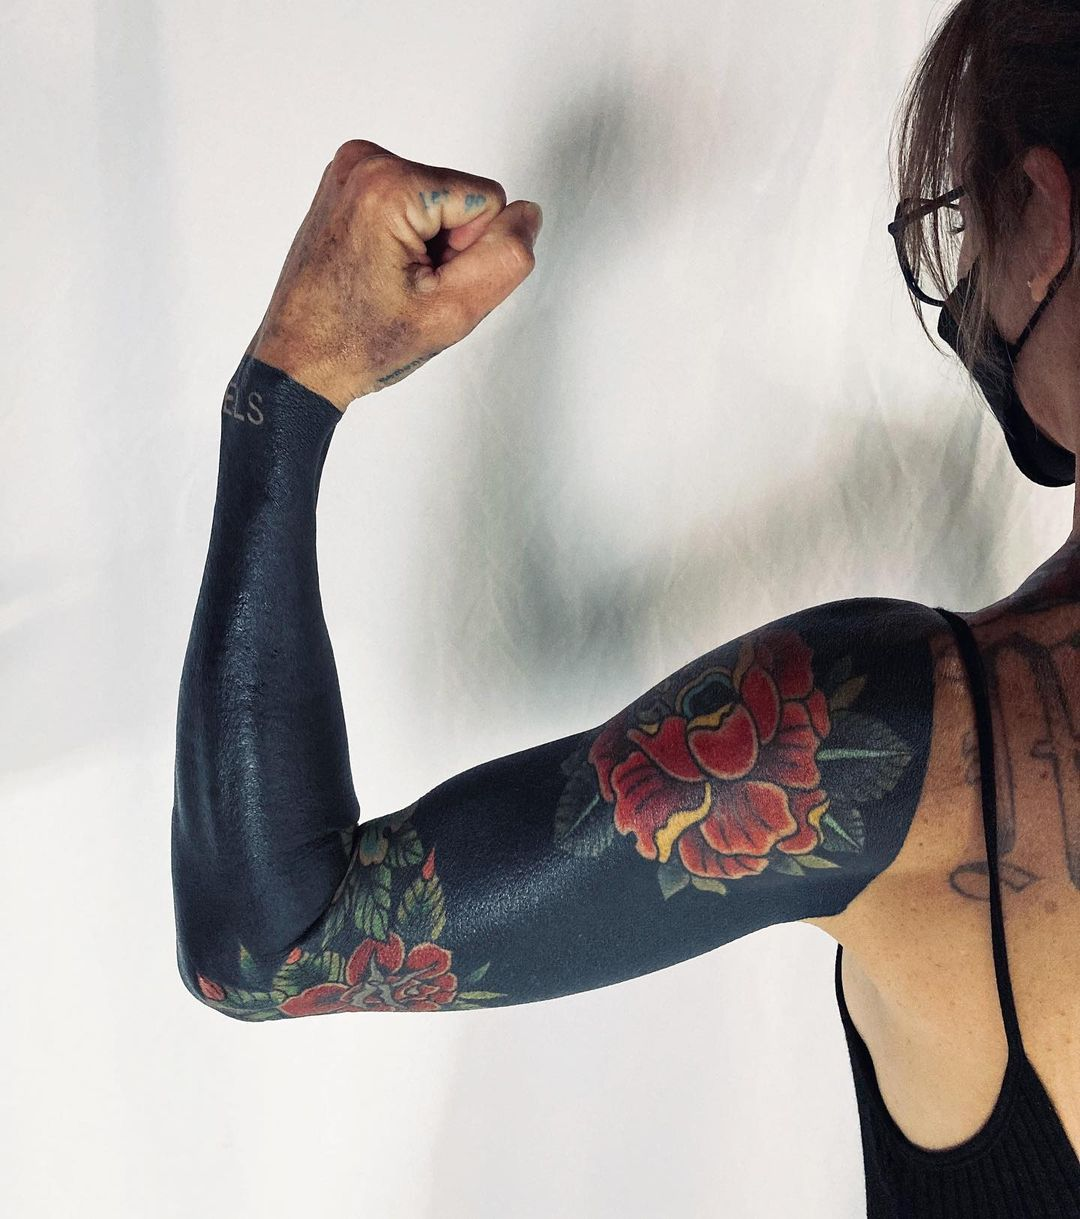 blackout neotraditional flowers tattoo